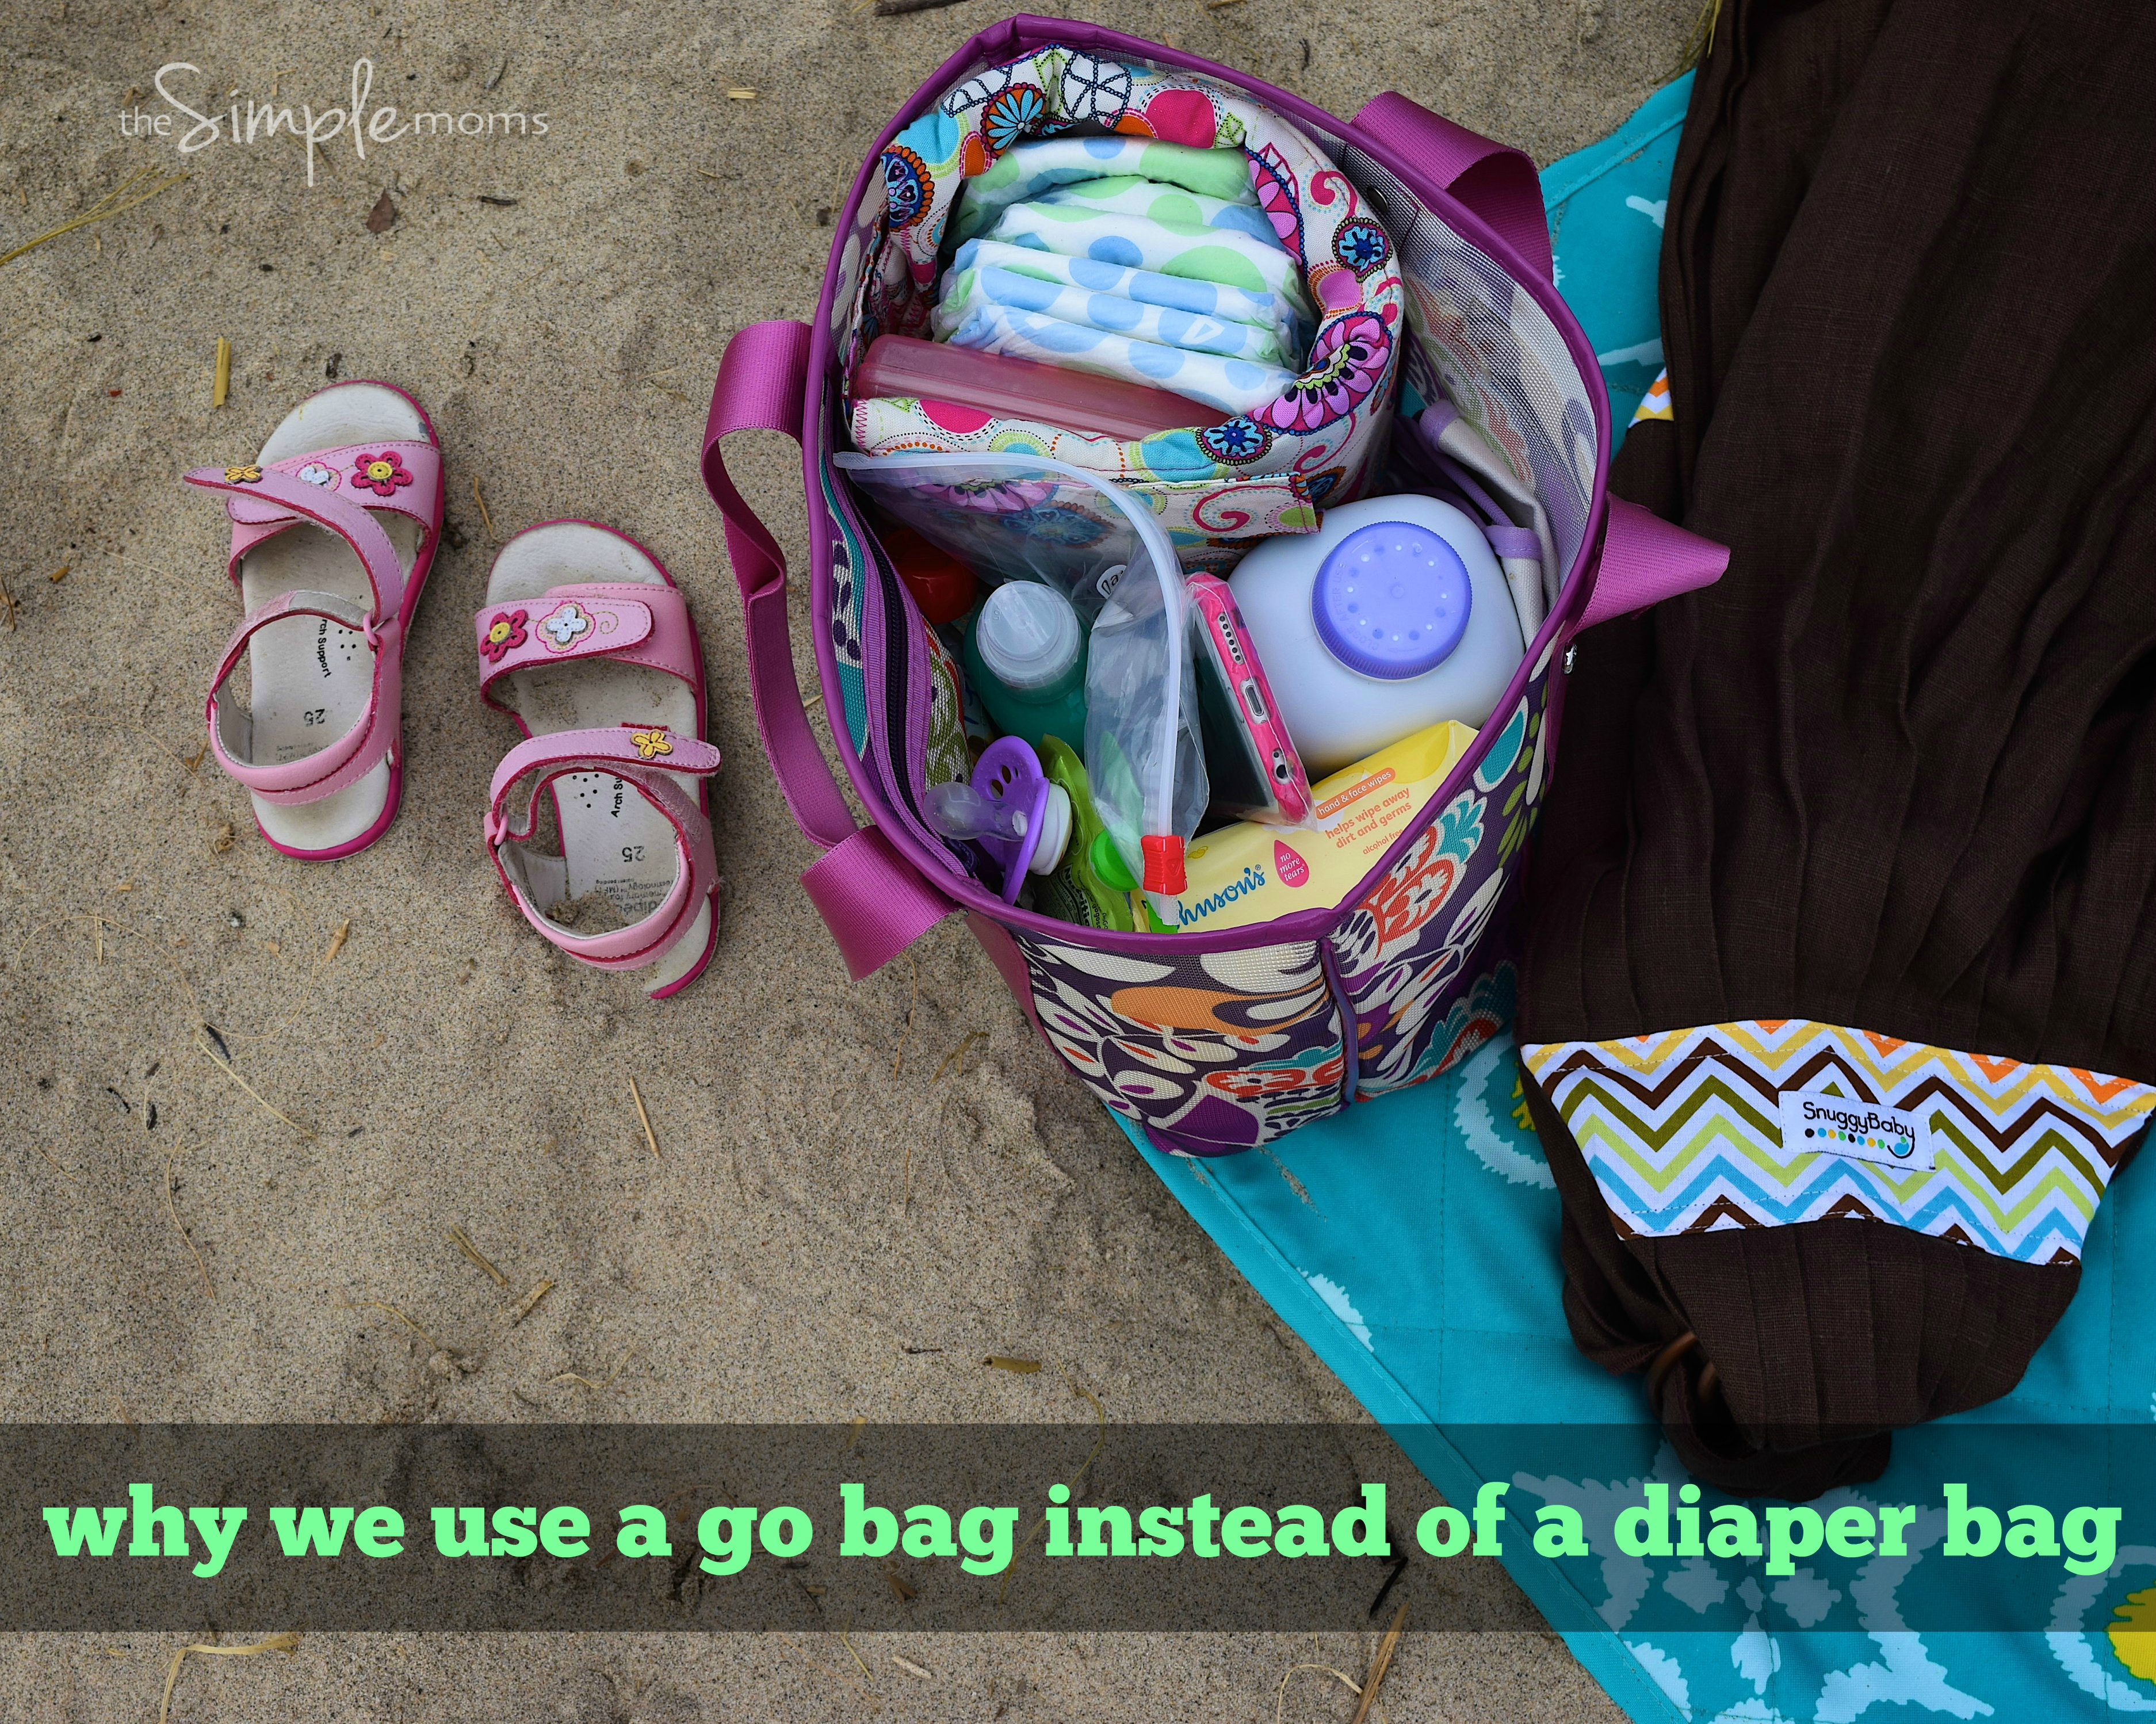 why we use a go bag instead of a diaper bag